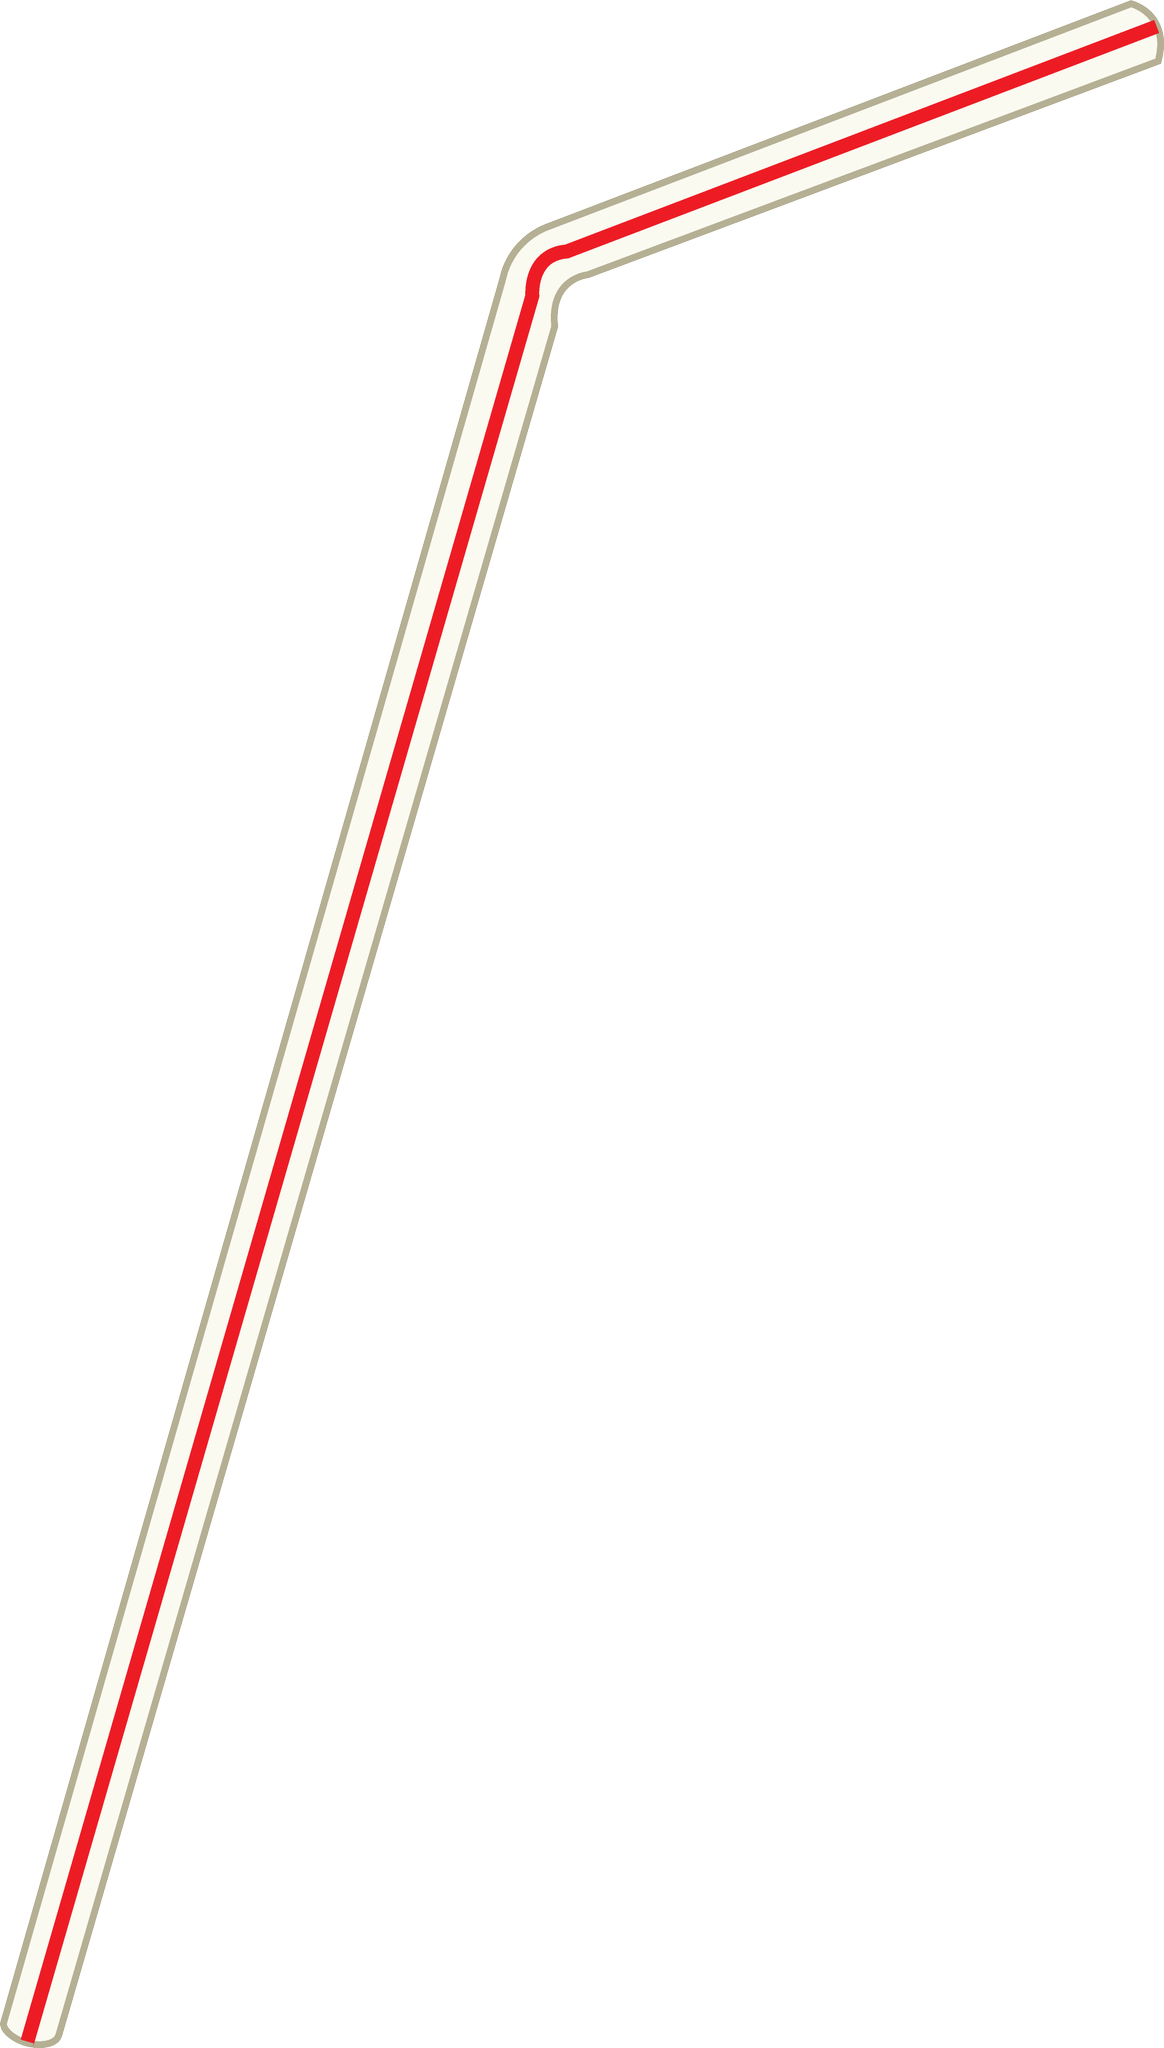 Drink with straw png. Fizzy drinks drinking clip